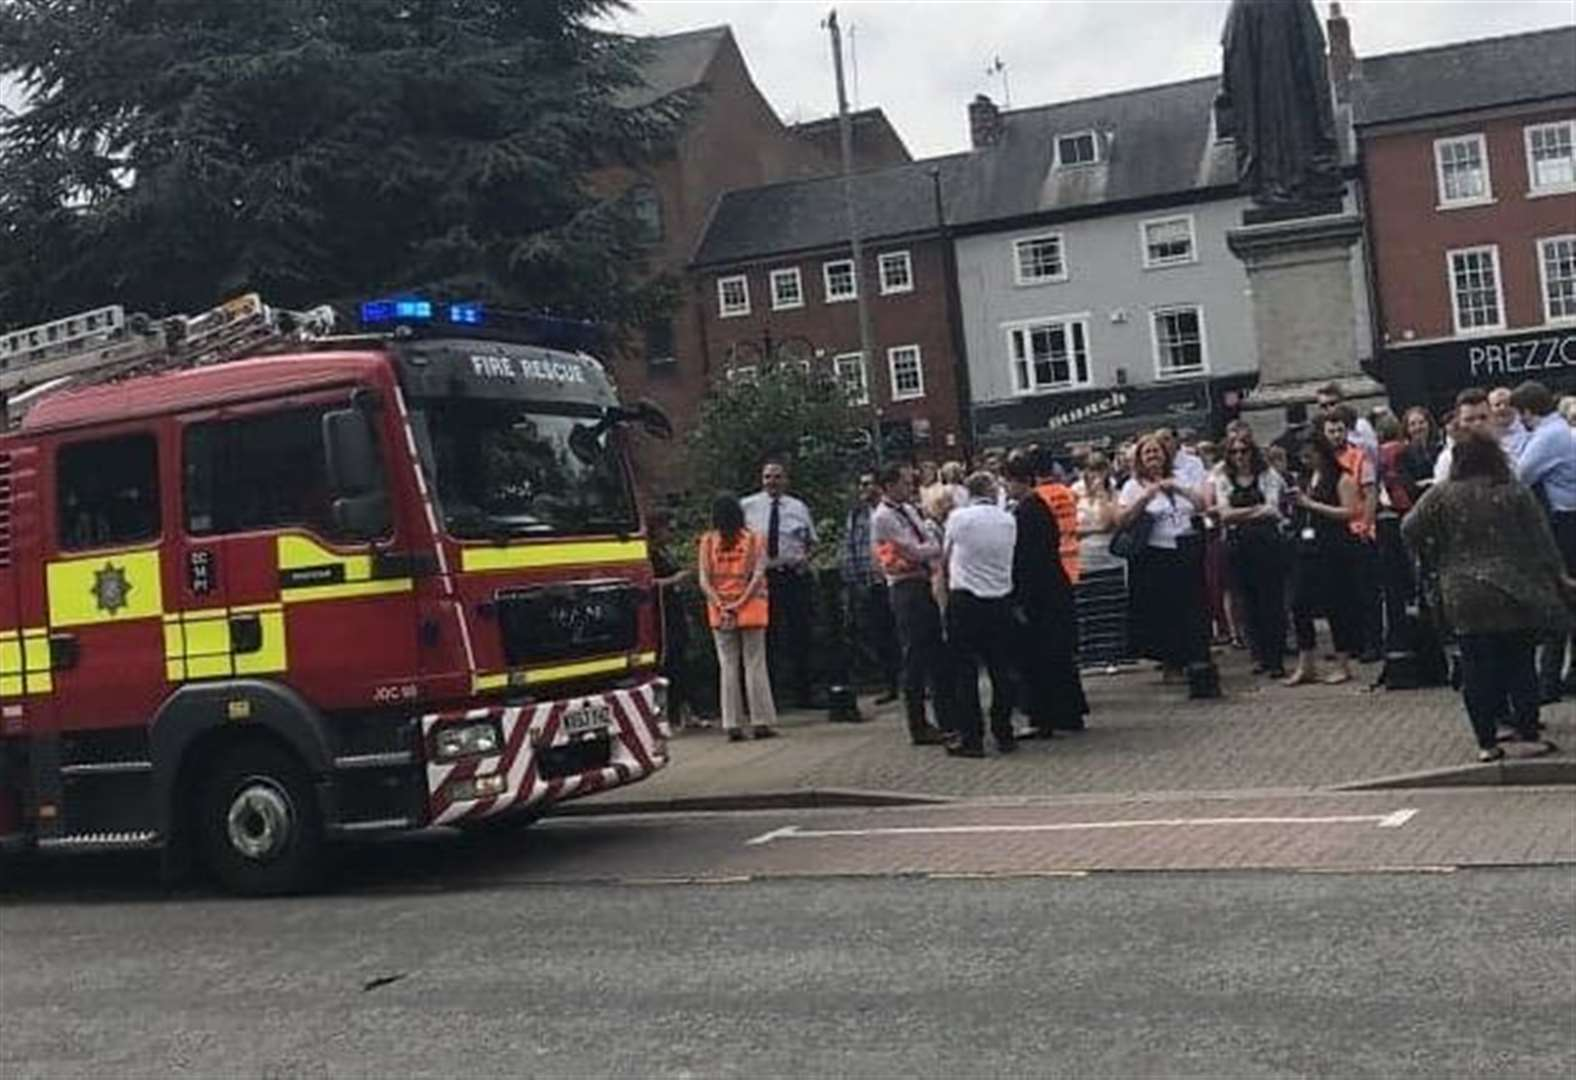 SKDC's Grantham offices evacuated following fire alarm